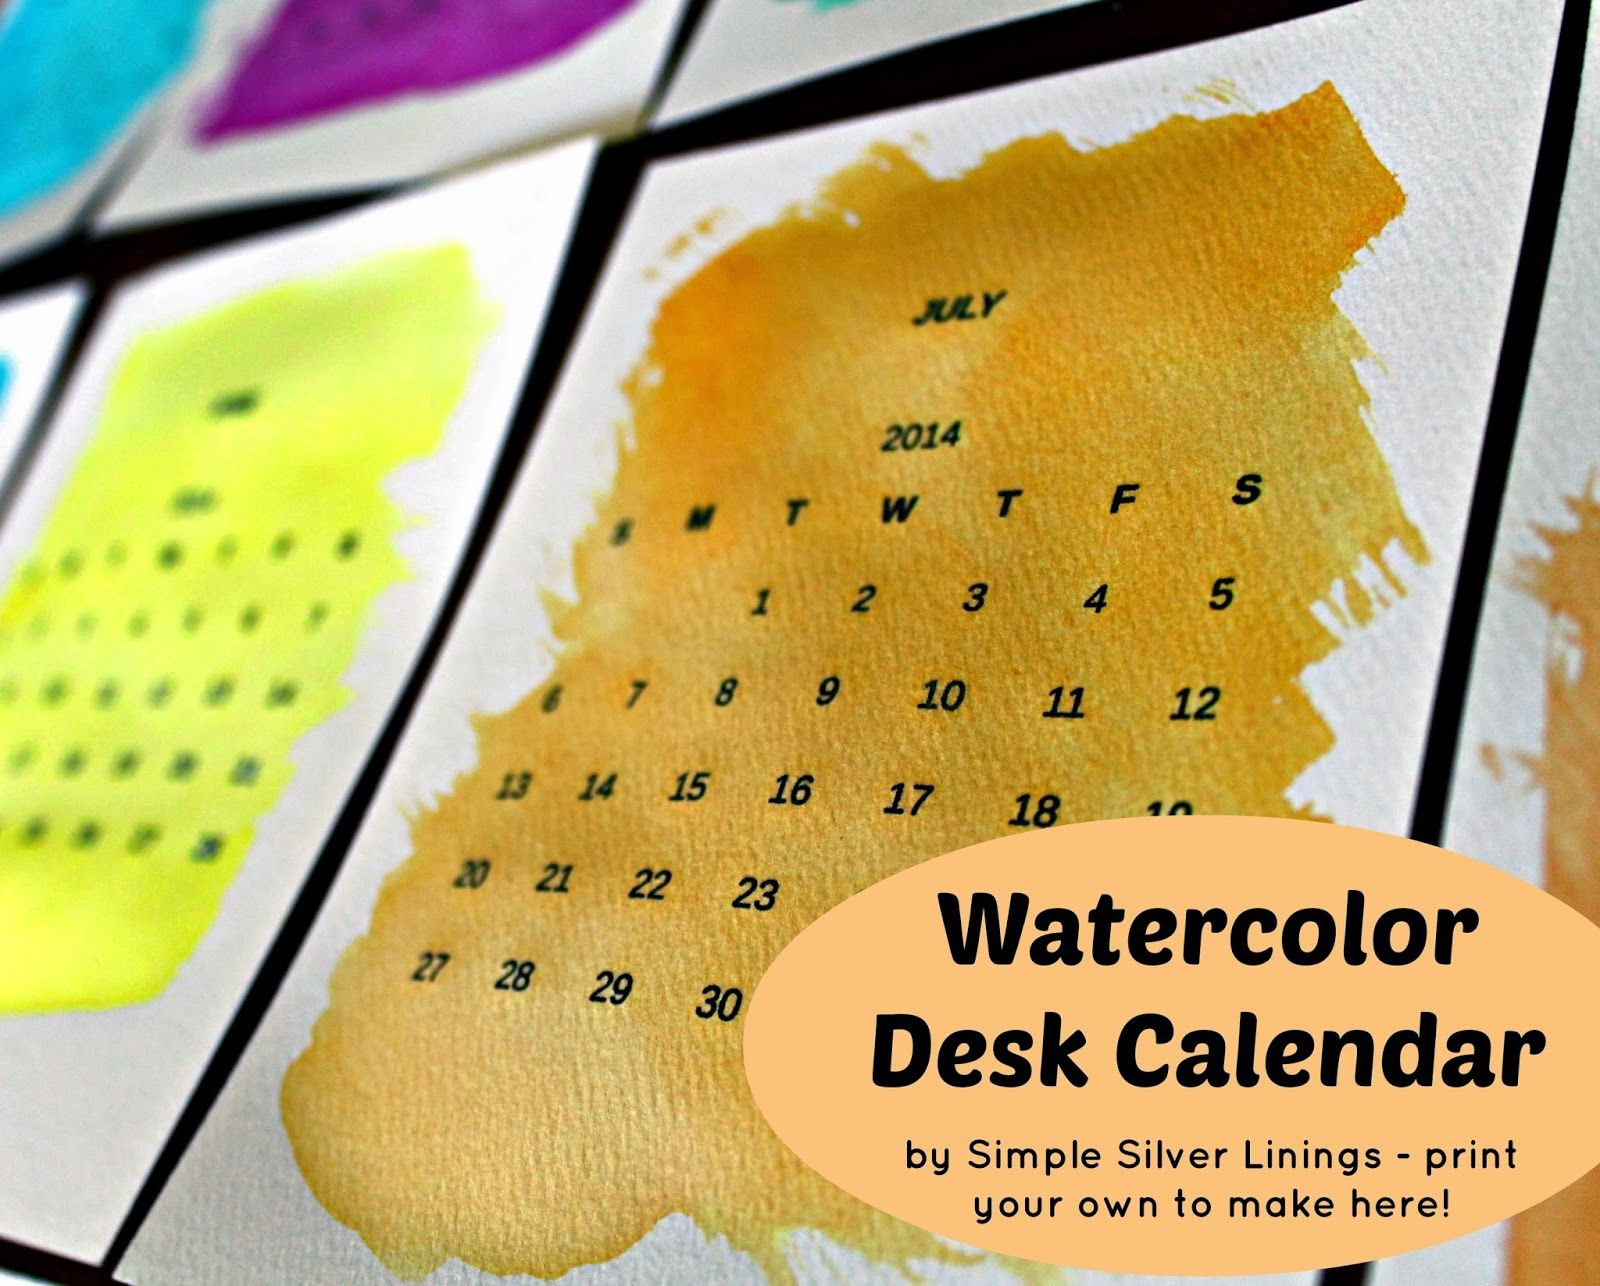 Simple silver linings give this watercolor desk calendar a dry run watercolor desk calendar art diy do it yourself diy projects watercolors diy art projects desk calendar solutioingenieria Images